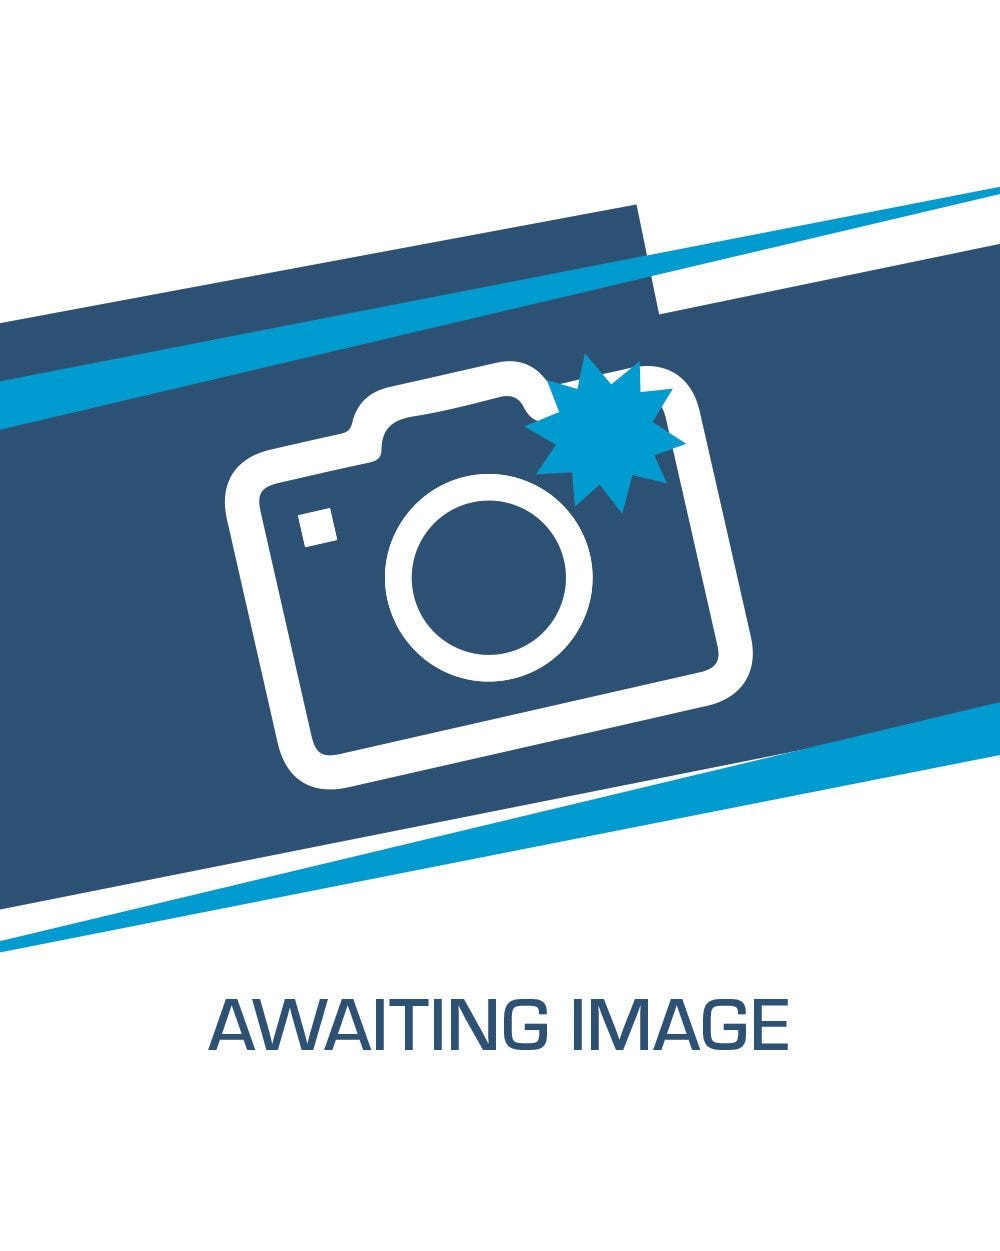 Manual de Bentley, Cabriolet y Scirocco 1985-1993